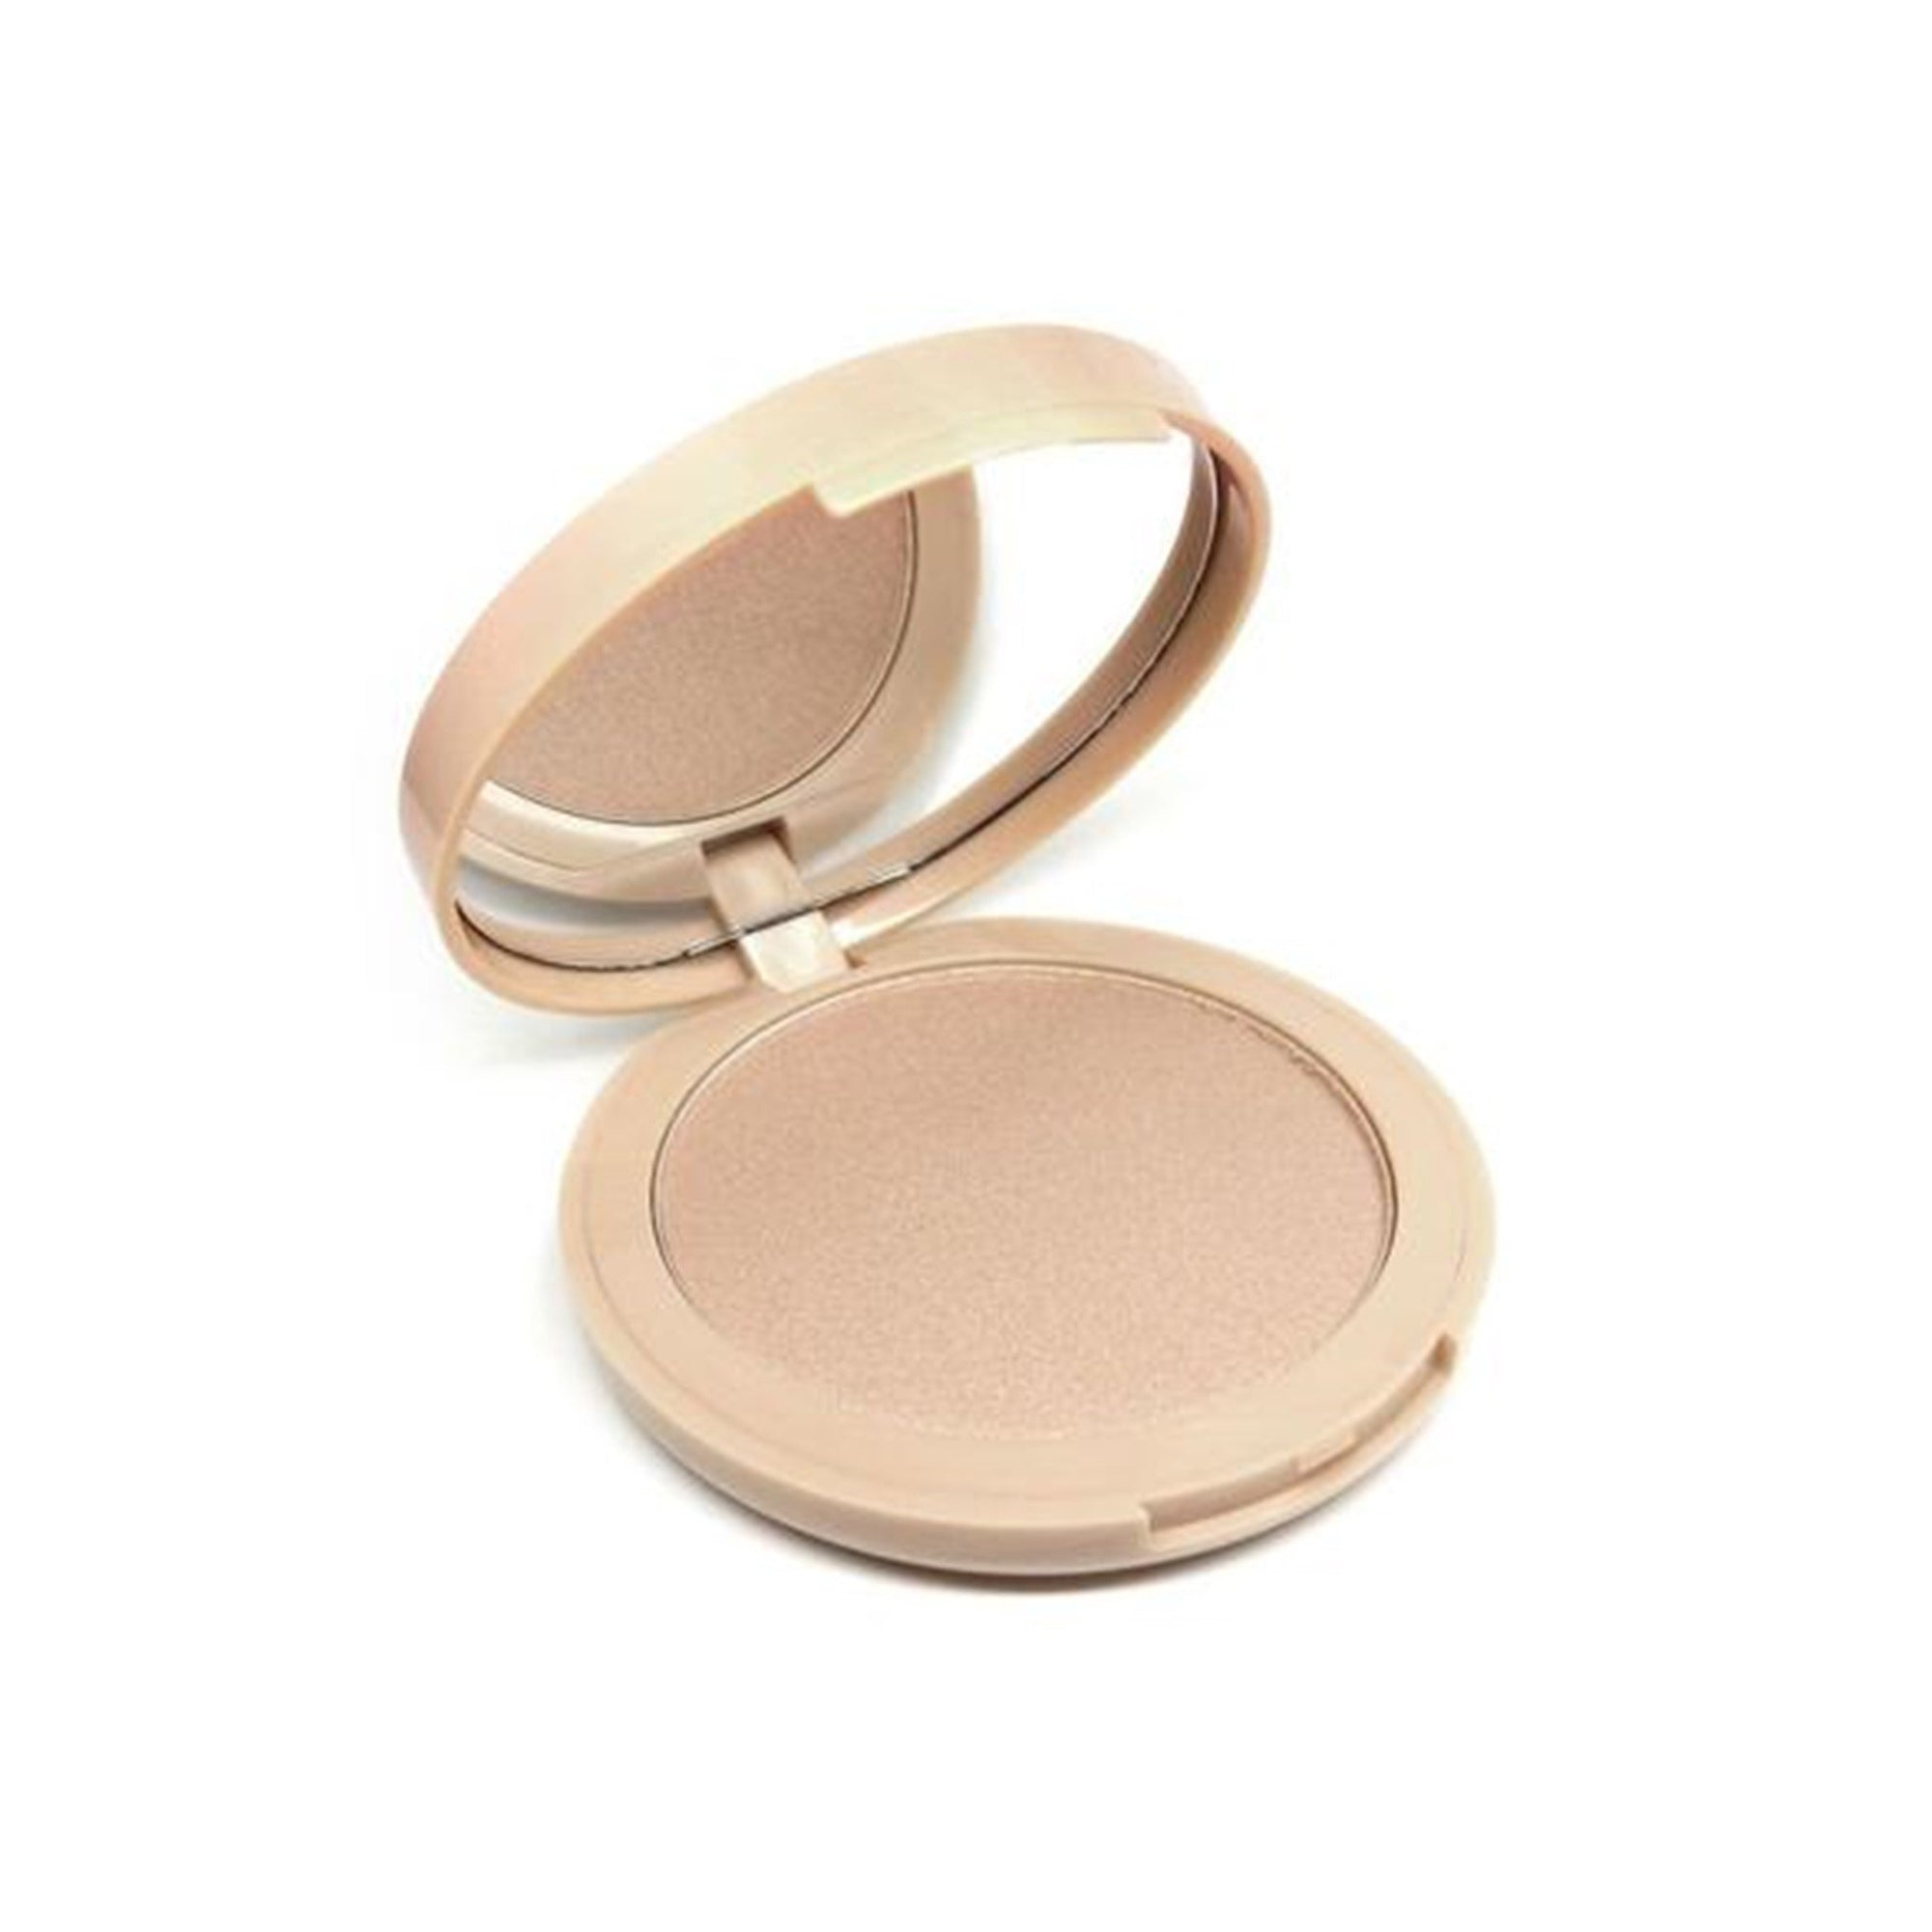 W7 Glowcommotion Highlighter